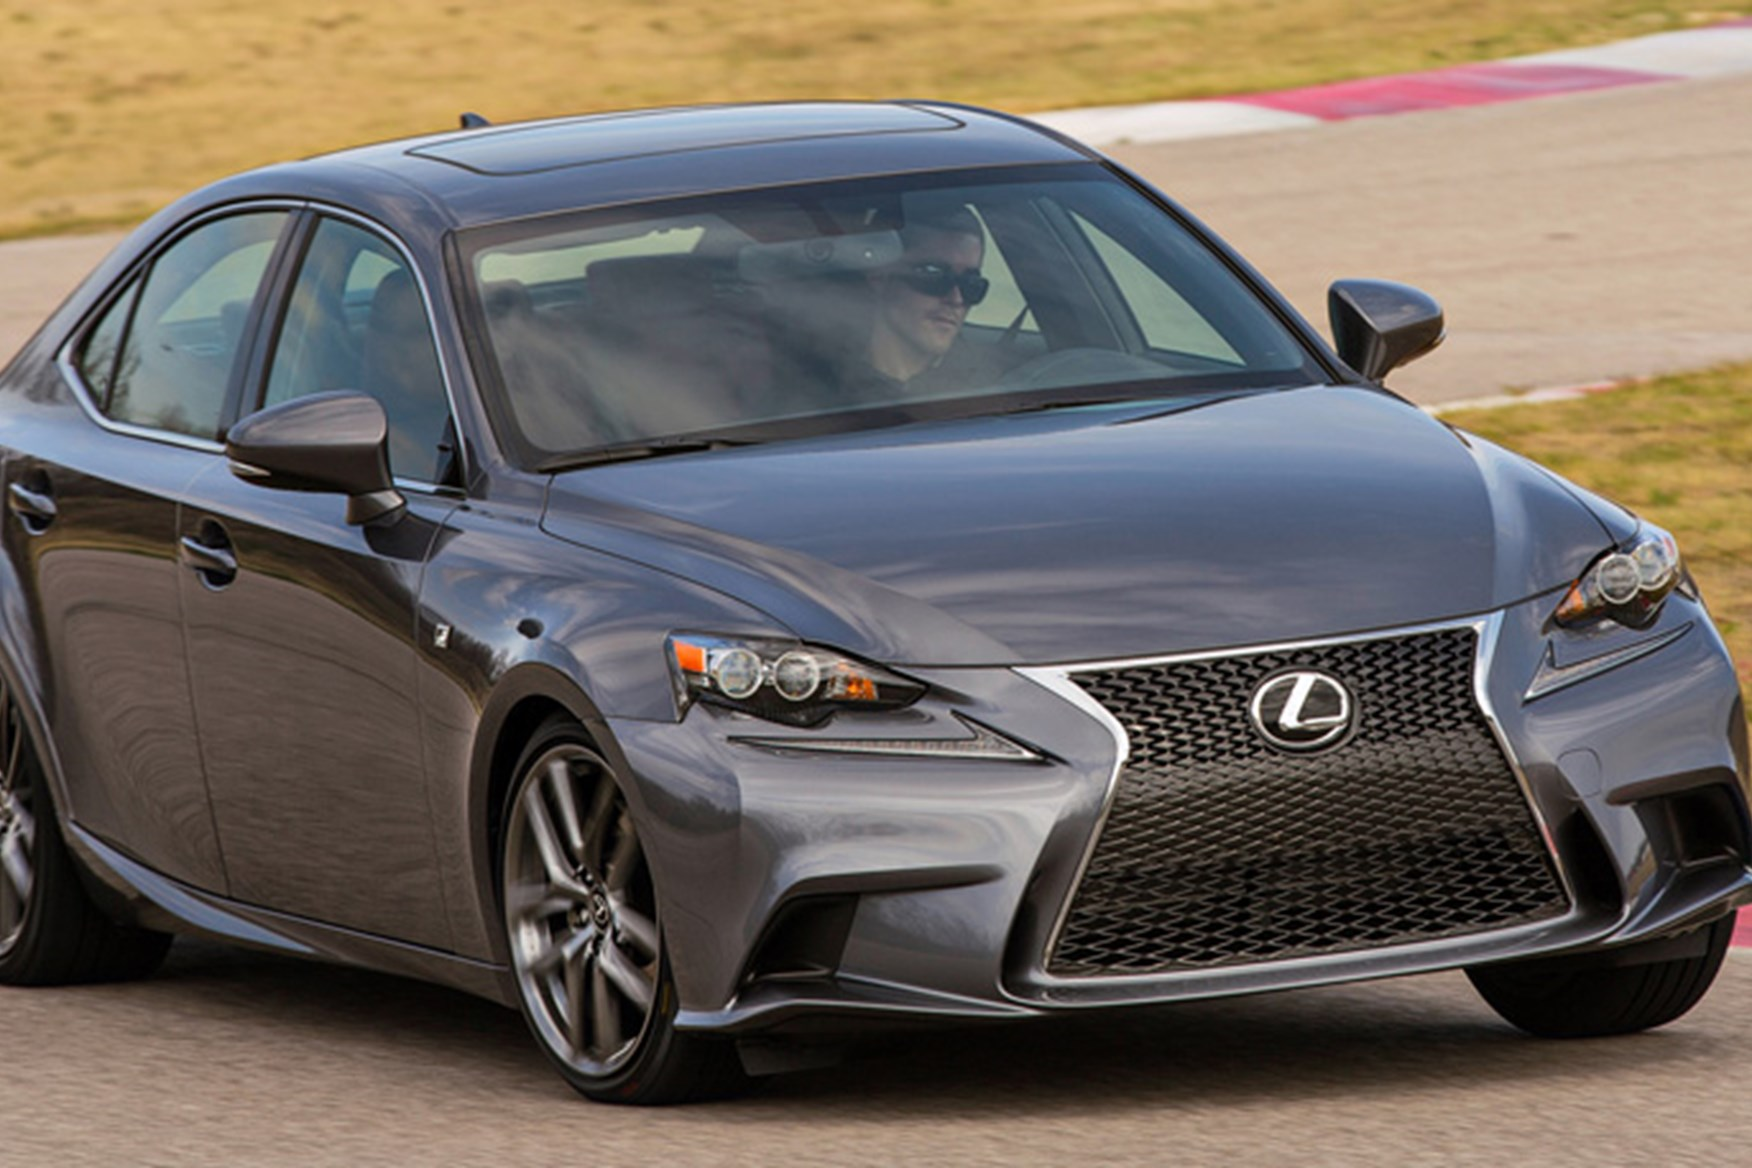 Great Lexus Is250 Lease U003eu003e Lexus IS250 F Sport (2014) Review | CAR Magazine